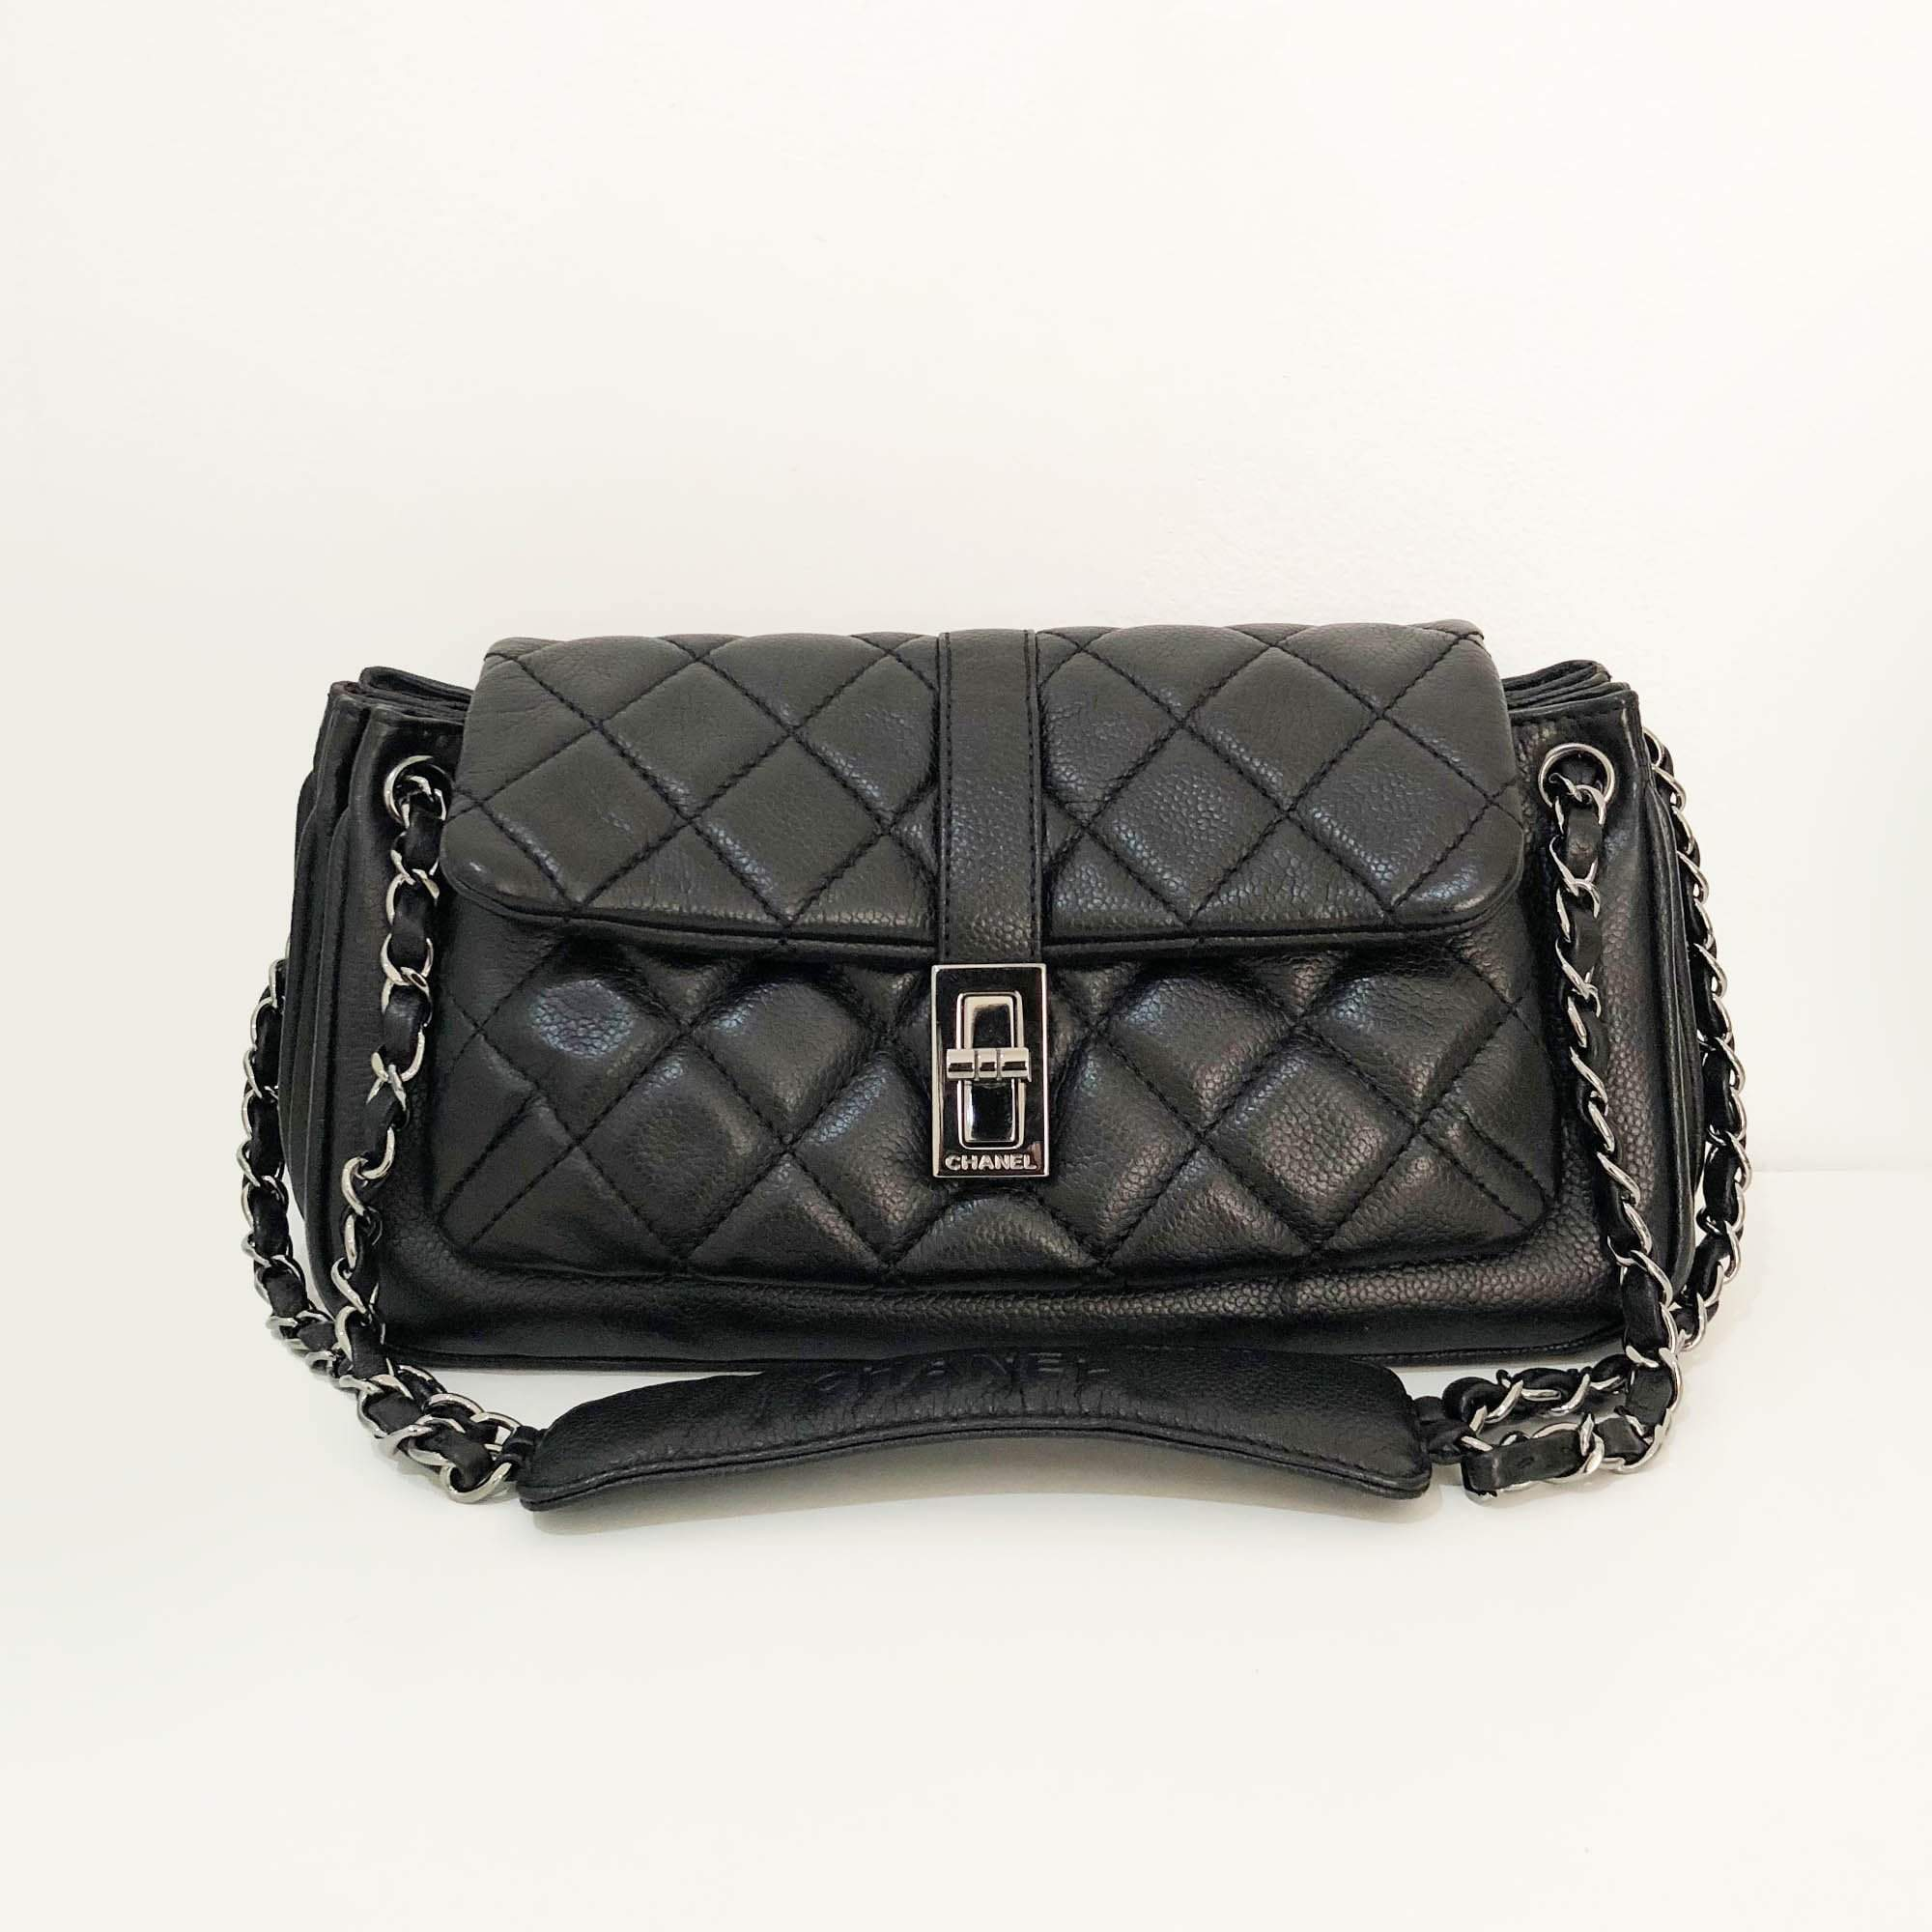 Chanel Vintage Mademoiselle Lock Accordion Quilted Caviar Bag ... efab793613928